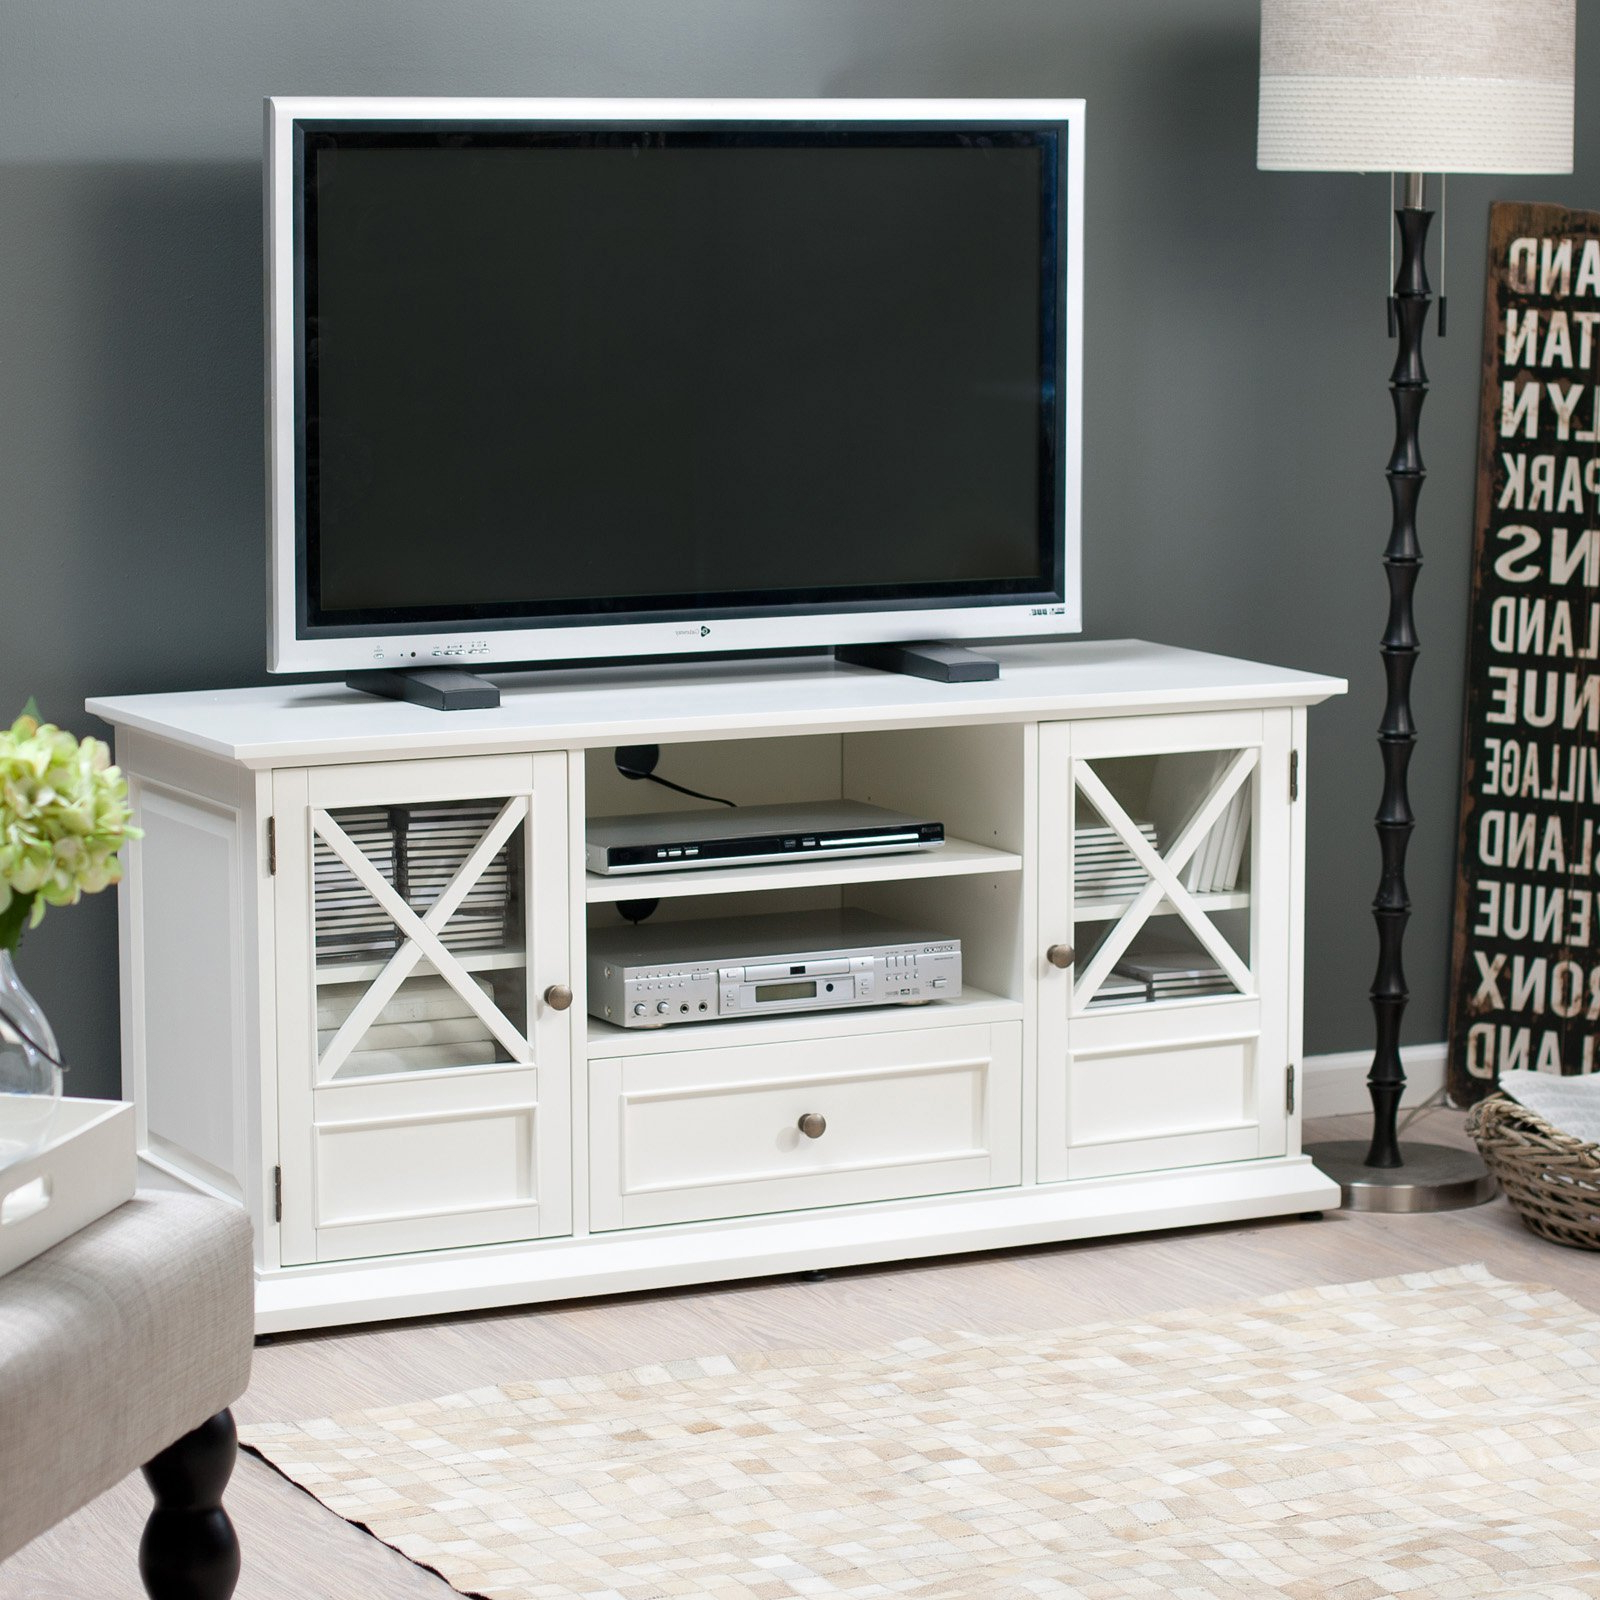 Tv Stands & Entertainment Centers | Hayneedle Throughout Murphy 72 Inch Tv Stands (View 16 of 20)